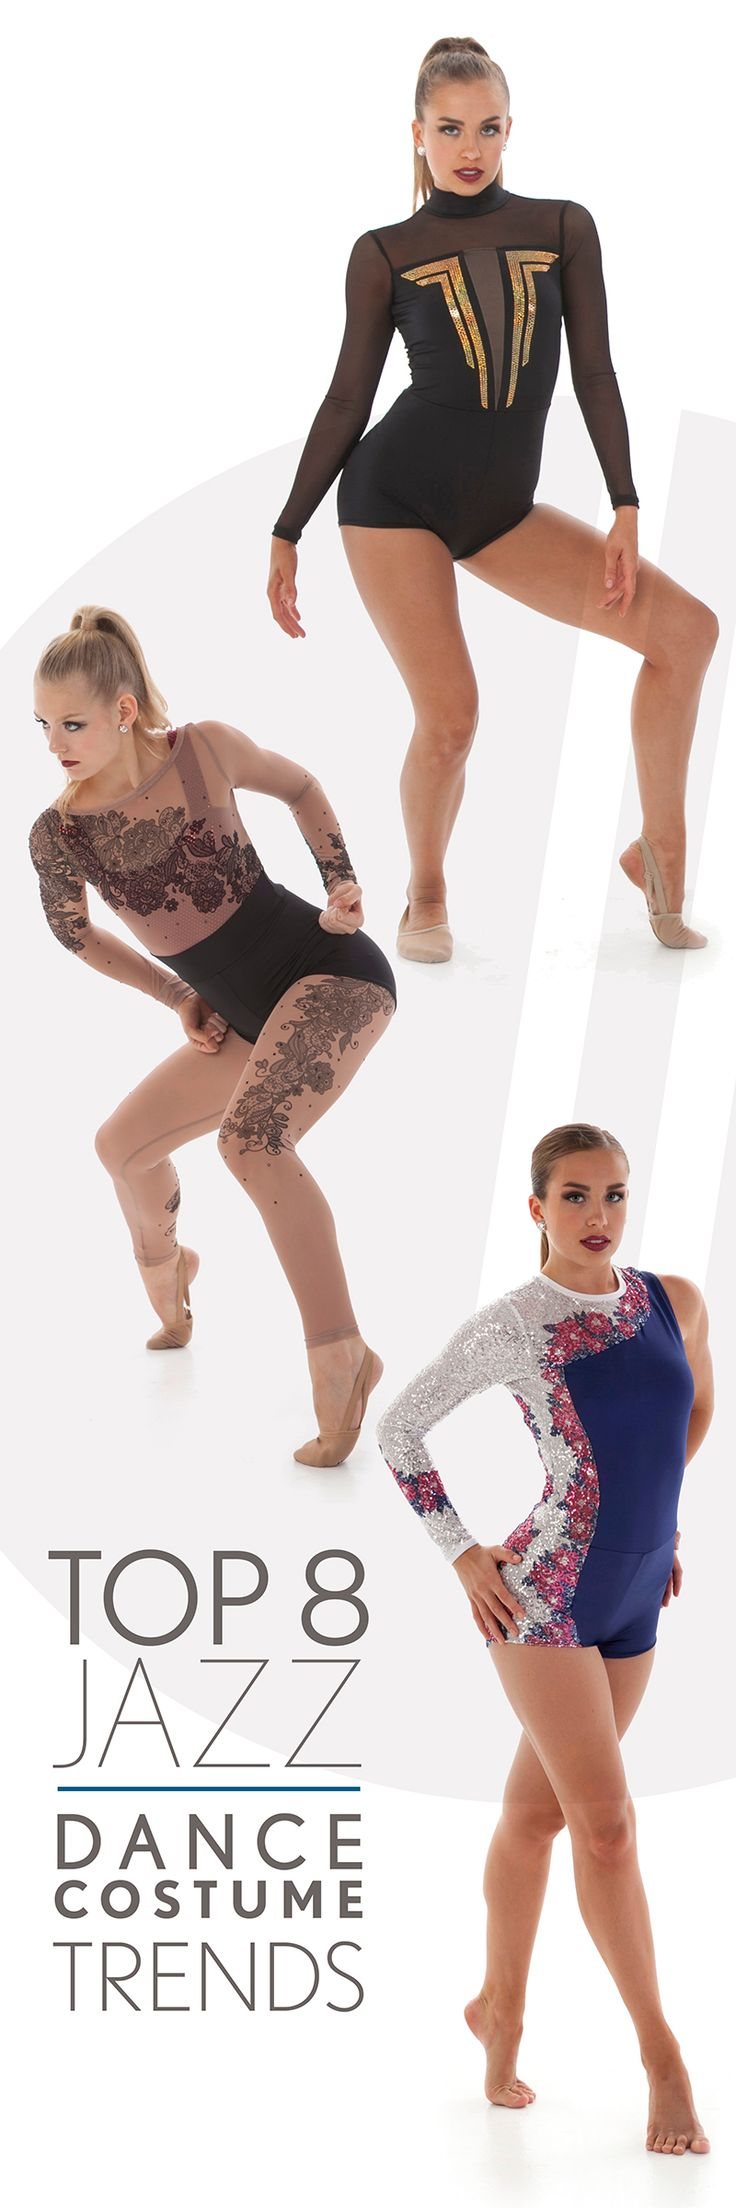 Top 8 Jazz Costume Trends for 2017!  Look's you'll love for your dance team costume!